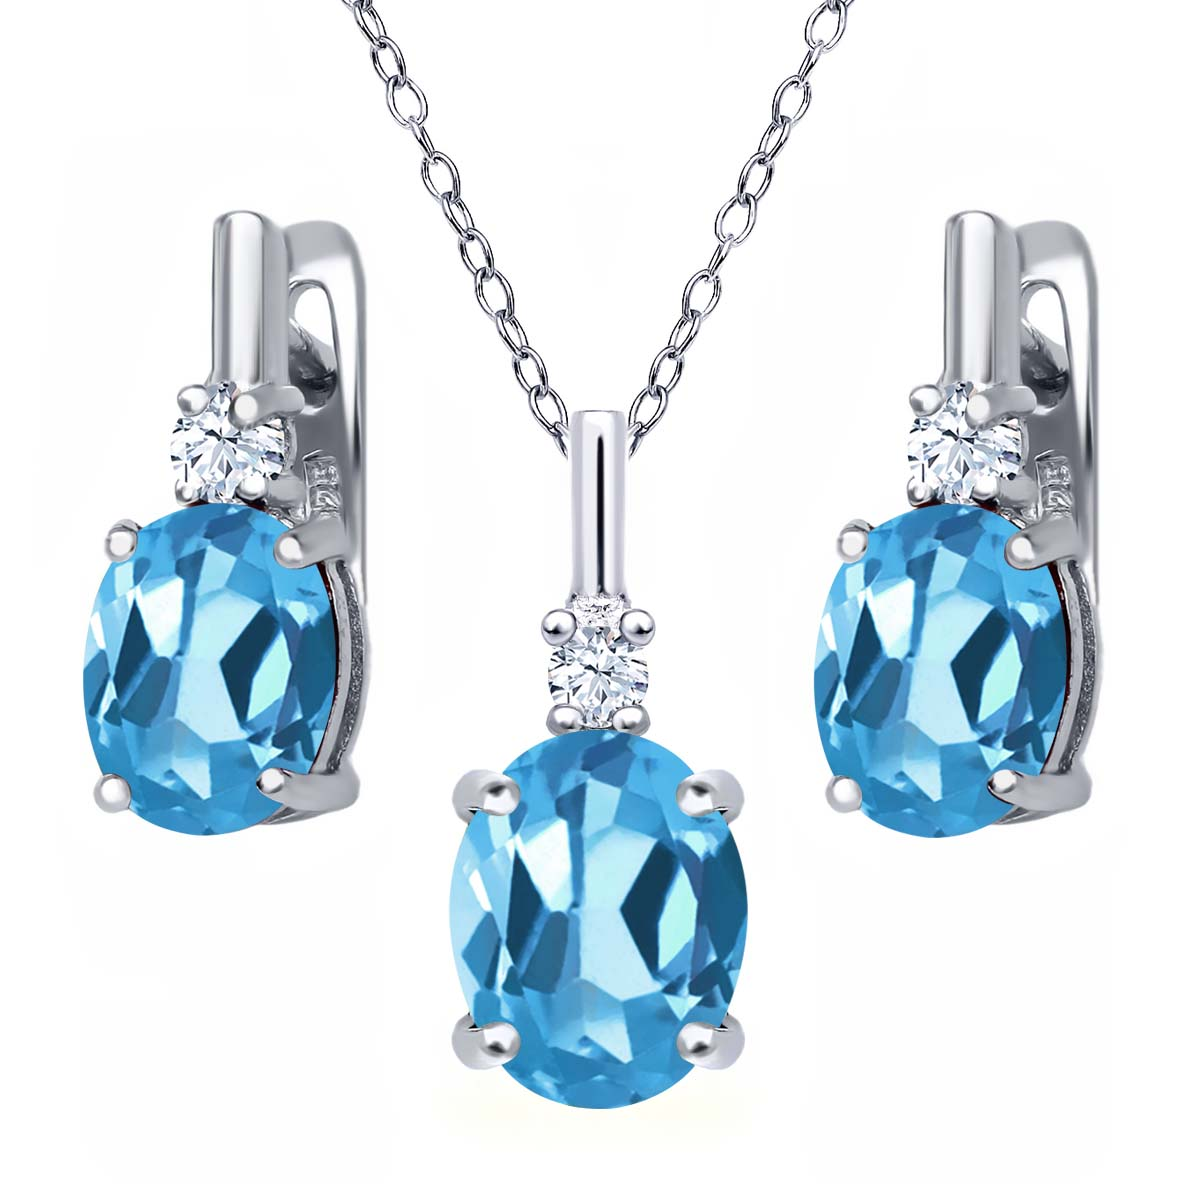 6.68 Ct Oval Swiss Blue Topaz White Topaz 925 Silver Pendant Earrings Set by